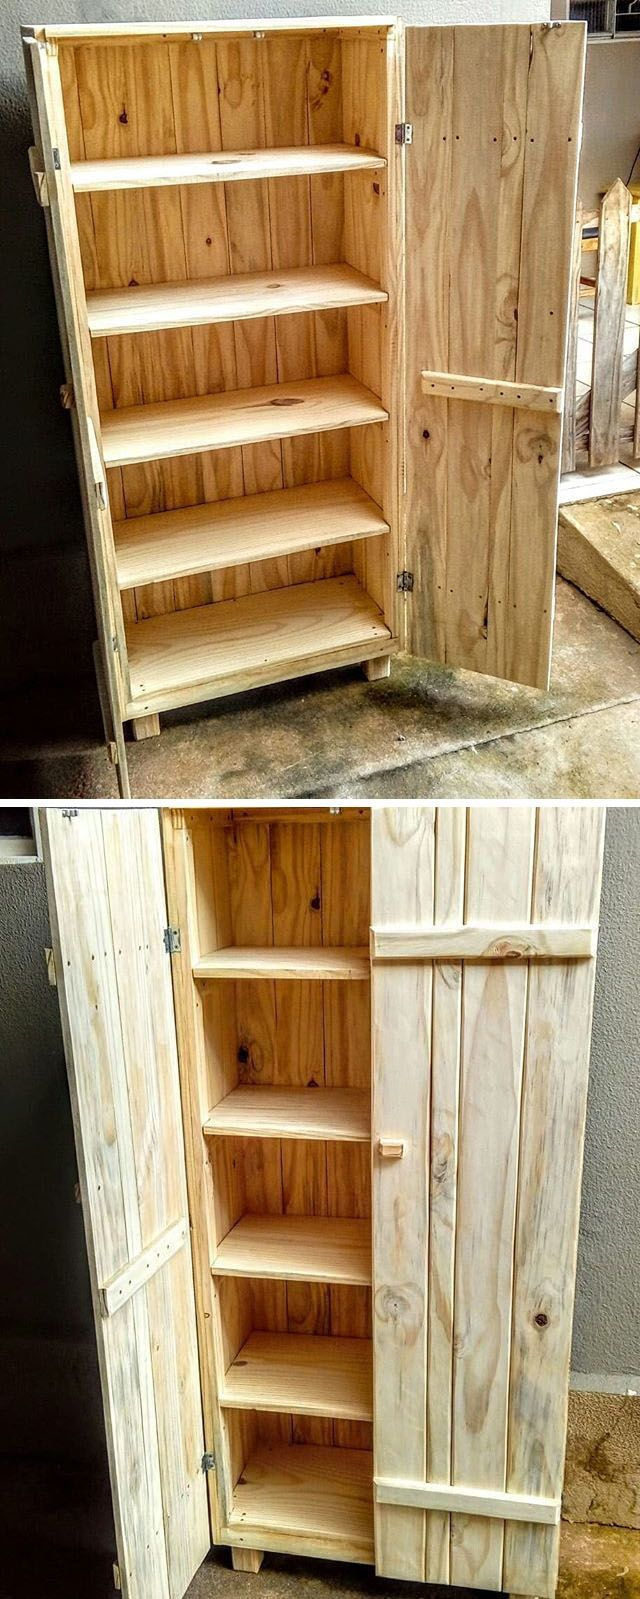 Pallet storage cup board projects